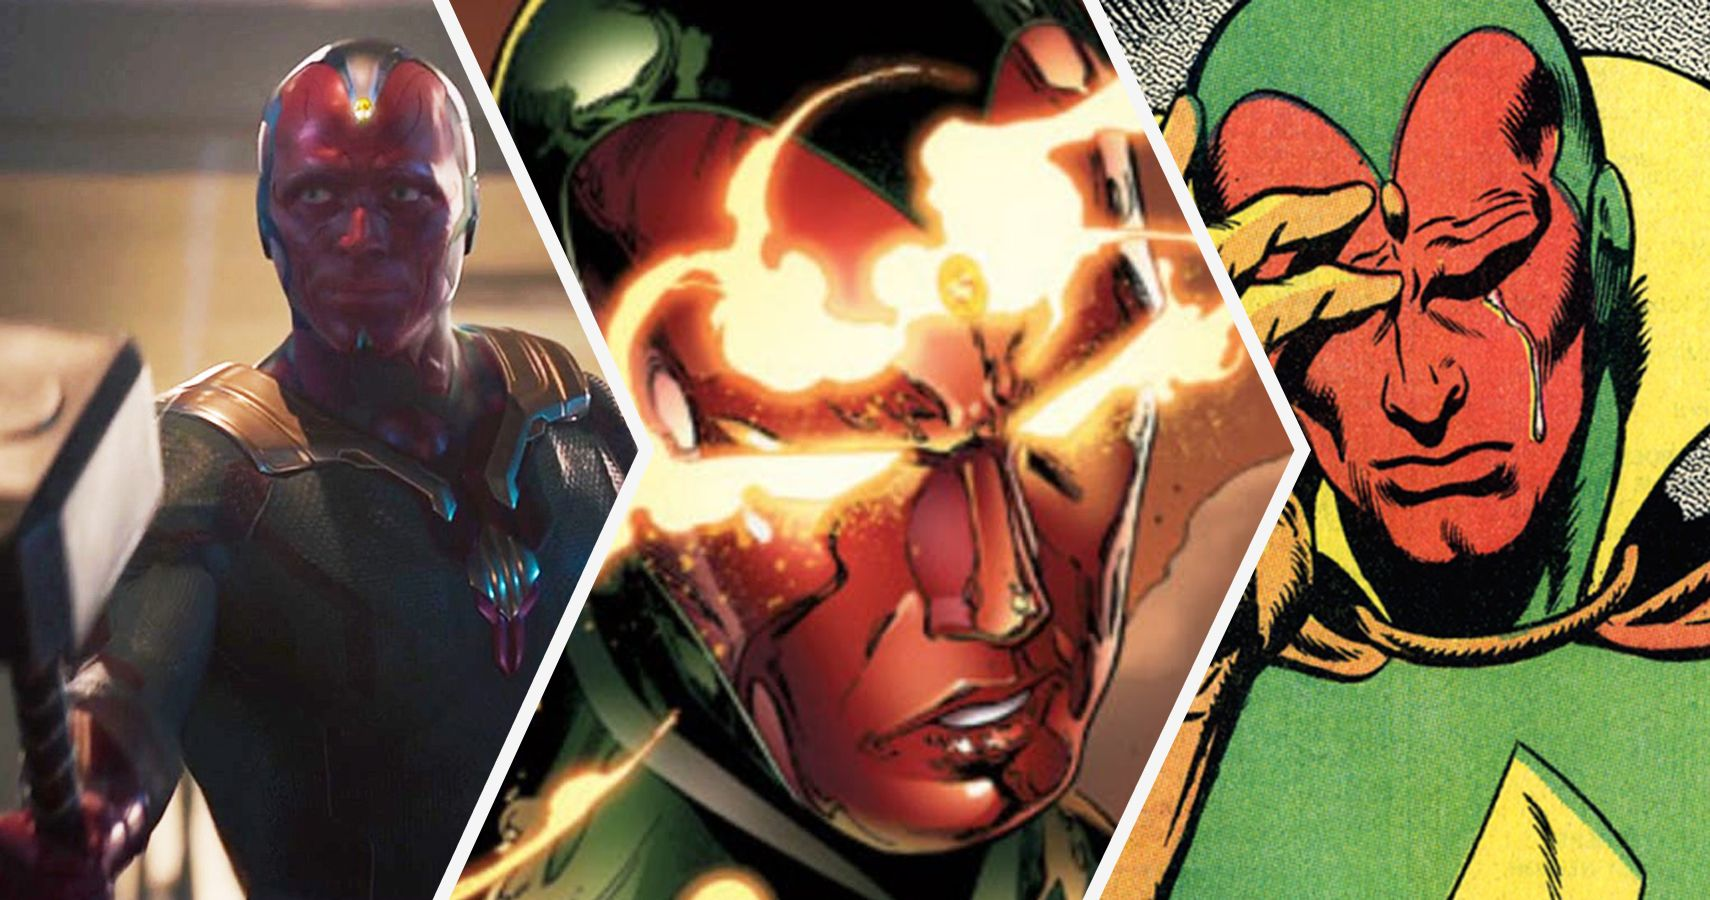 Infinity War: 15 Awesome Powers Only True Fans Know Vision Has